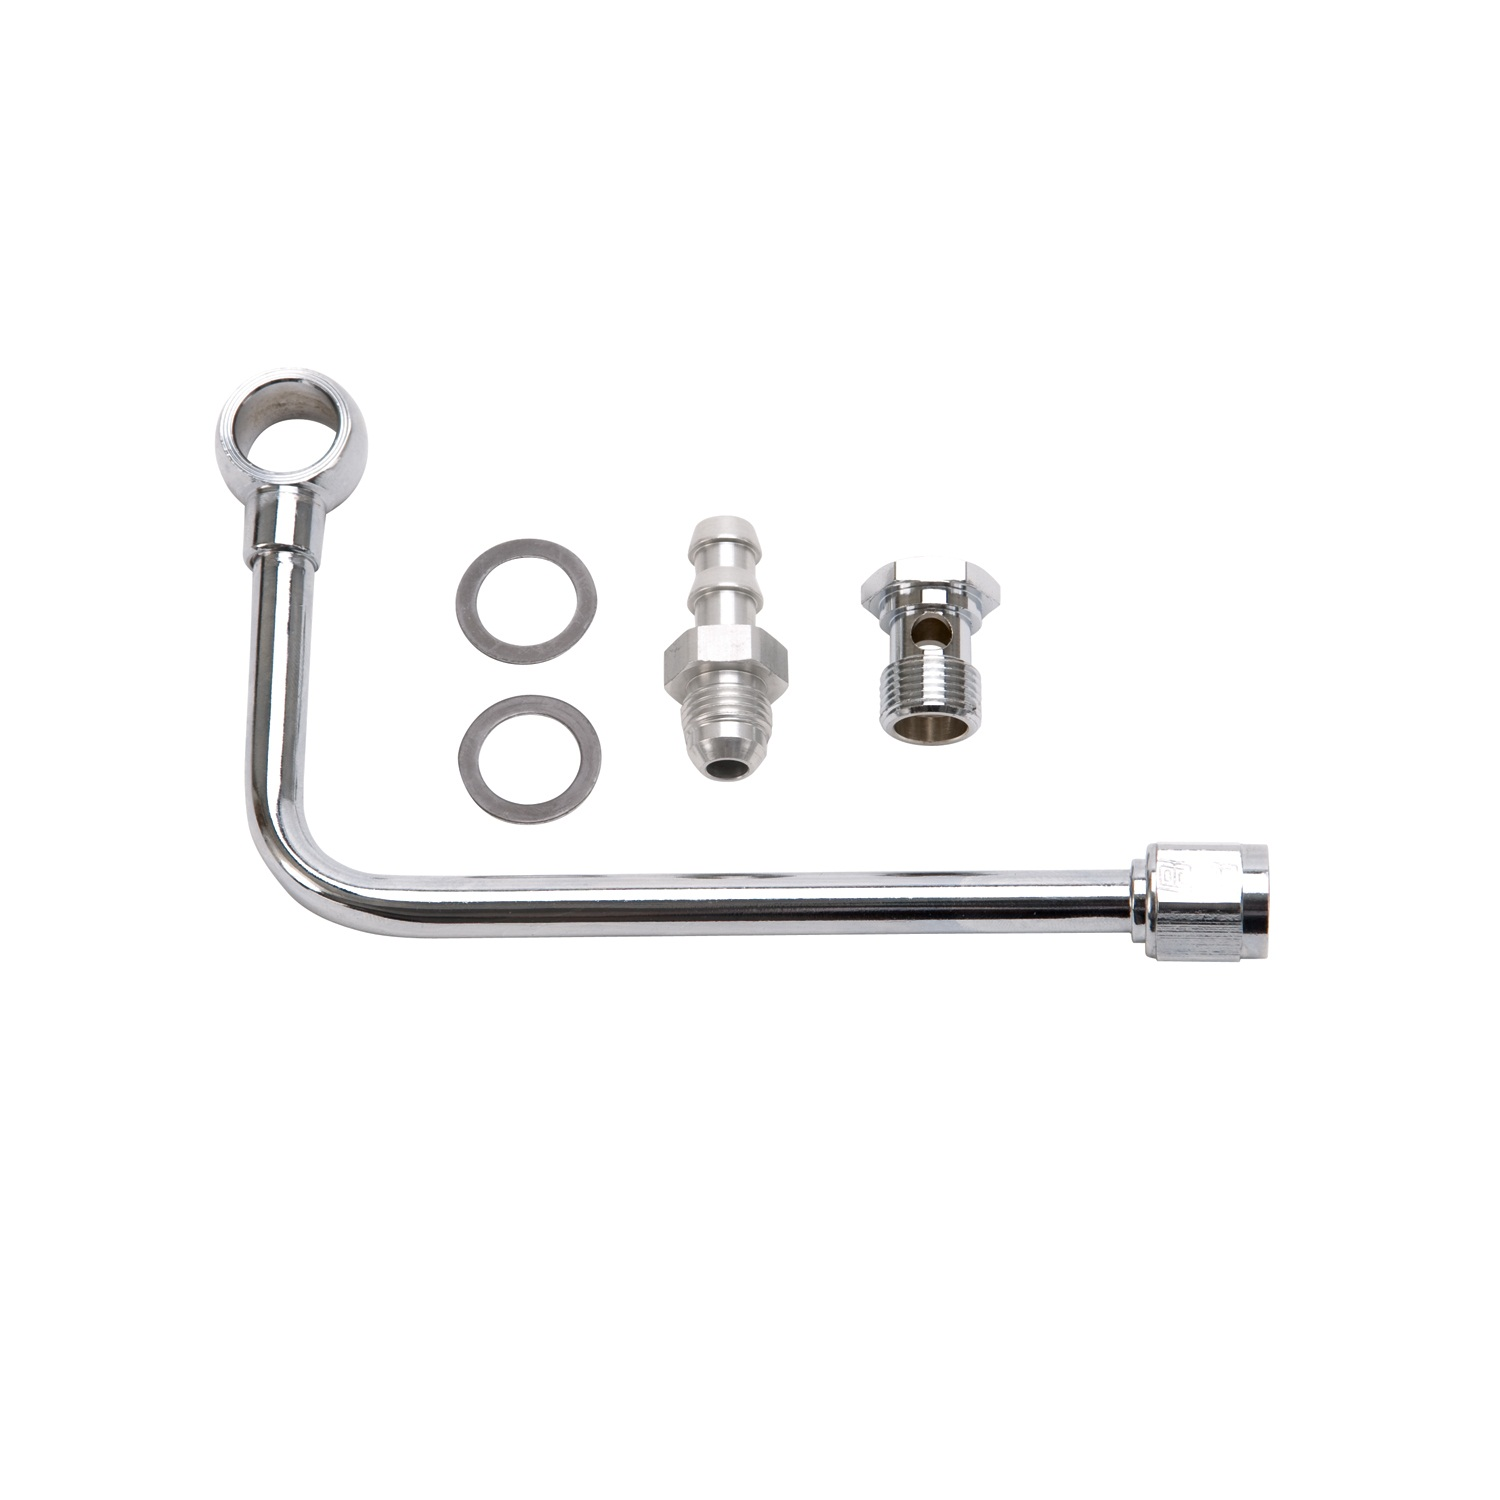 edelbrock 8126 single feed fuel line kit ebay. Black Bedroom Furniture Sets. Home Design Ideas